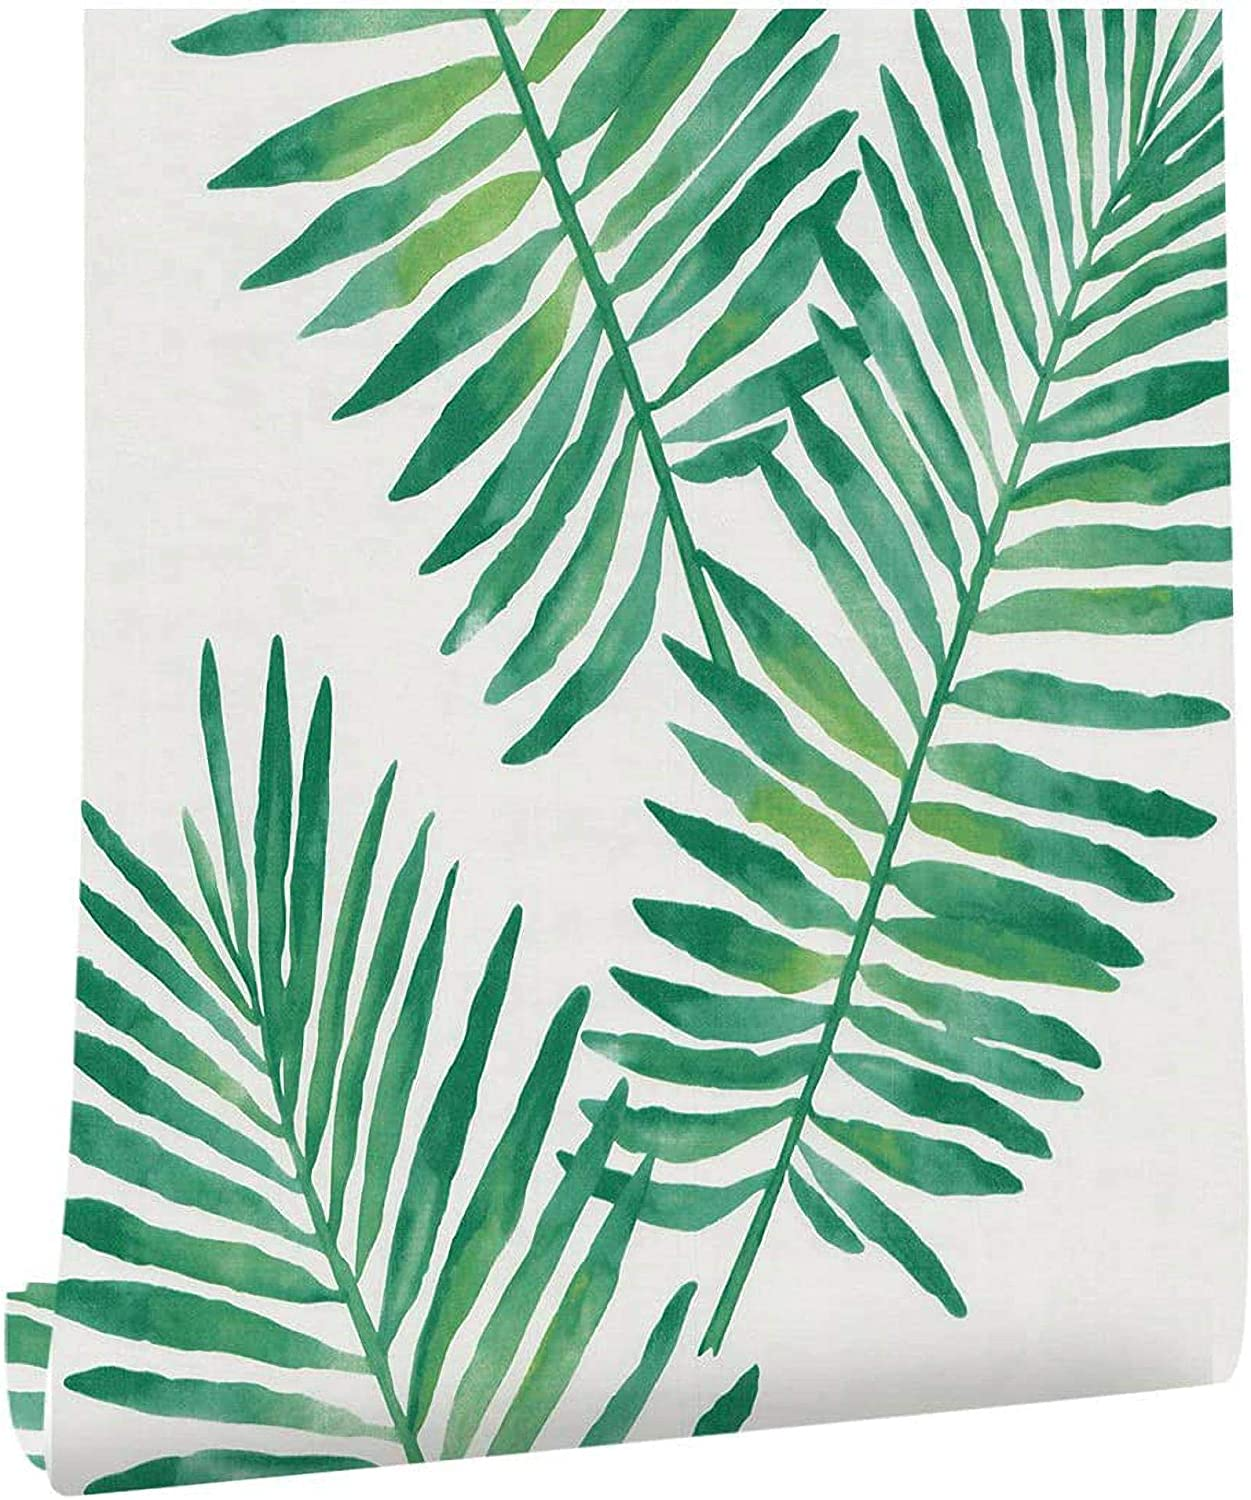 "Palm Peel and Stick Wallpaper Shiplap Green Self Adhesive Removable Wallpaper,Waterproof Wallpaper and Shelf Liner,Home Decaration Wall Covering 17.7"" ×118"""